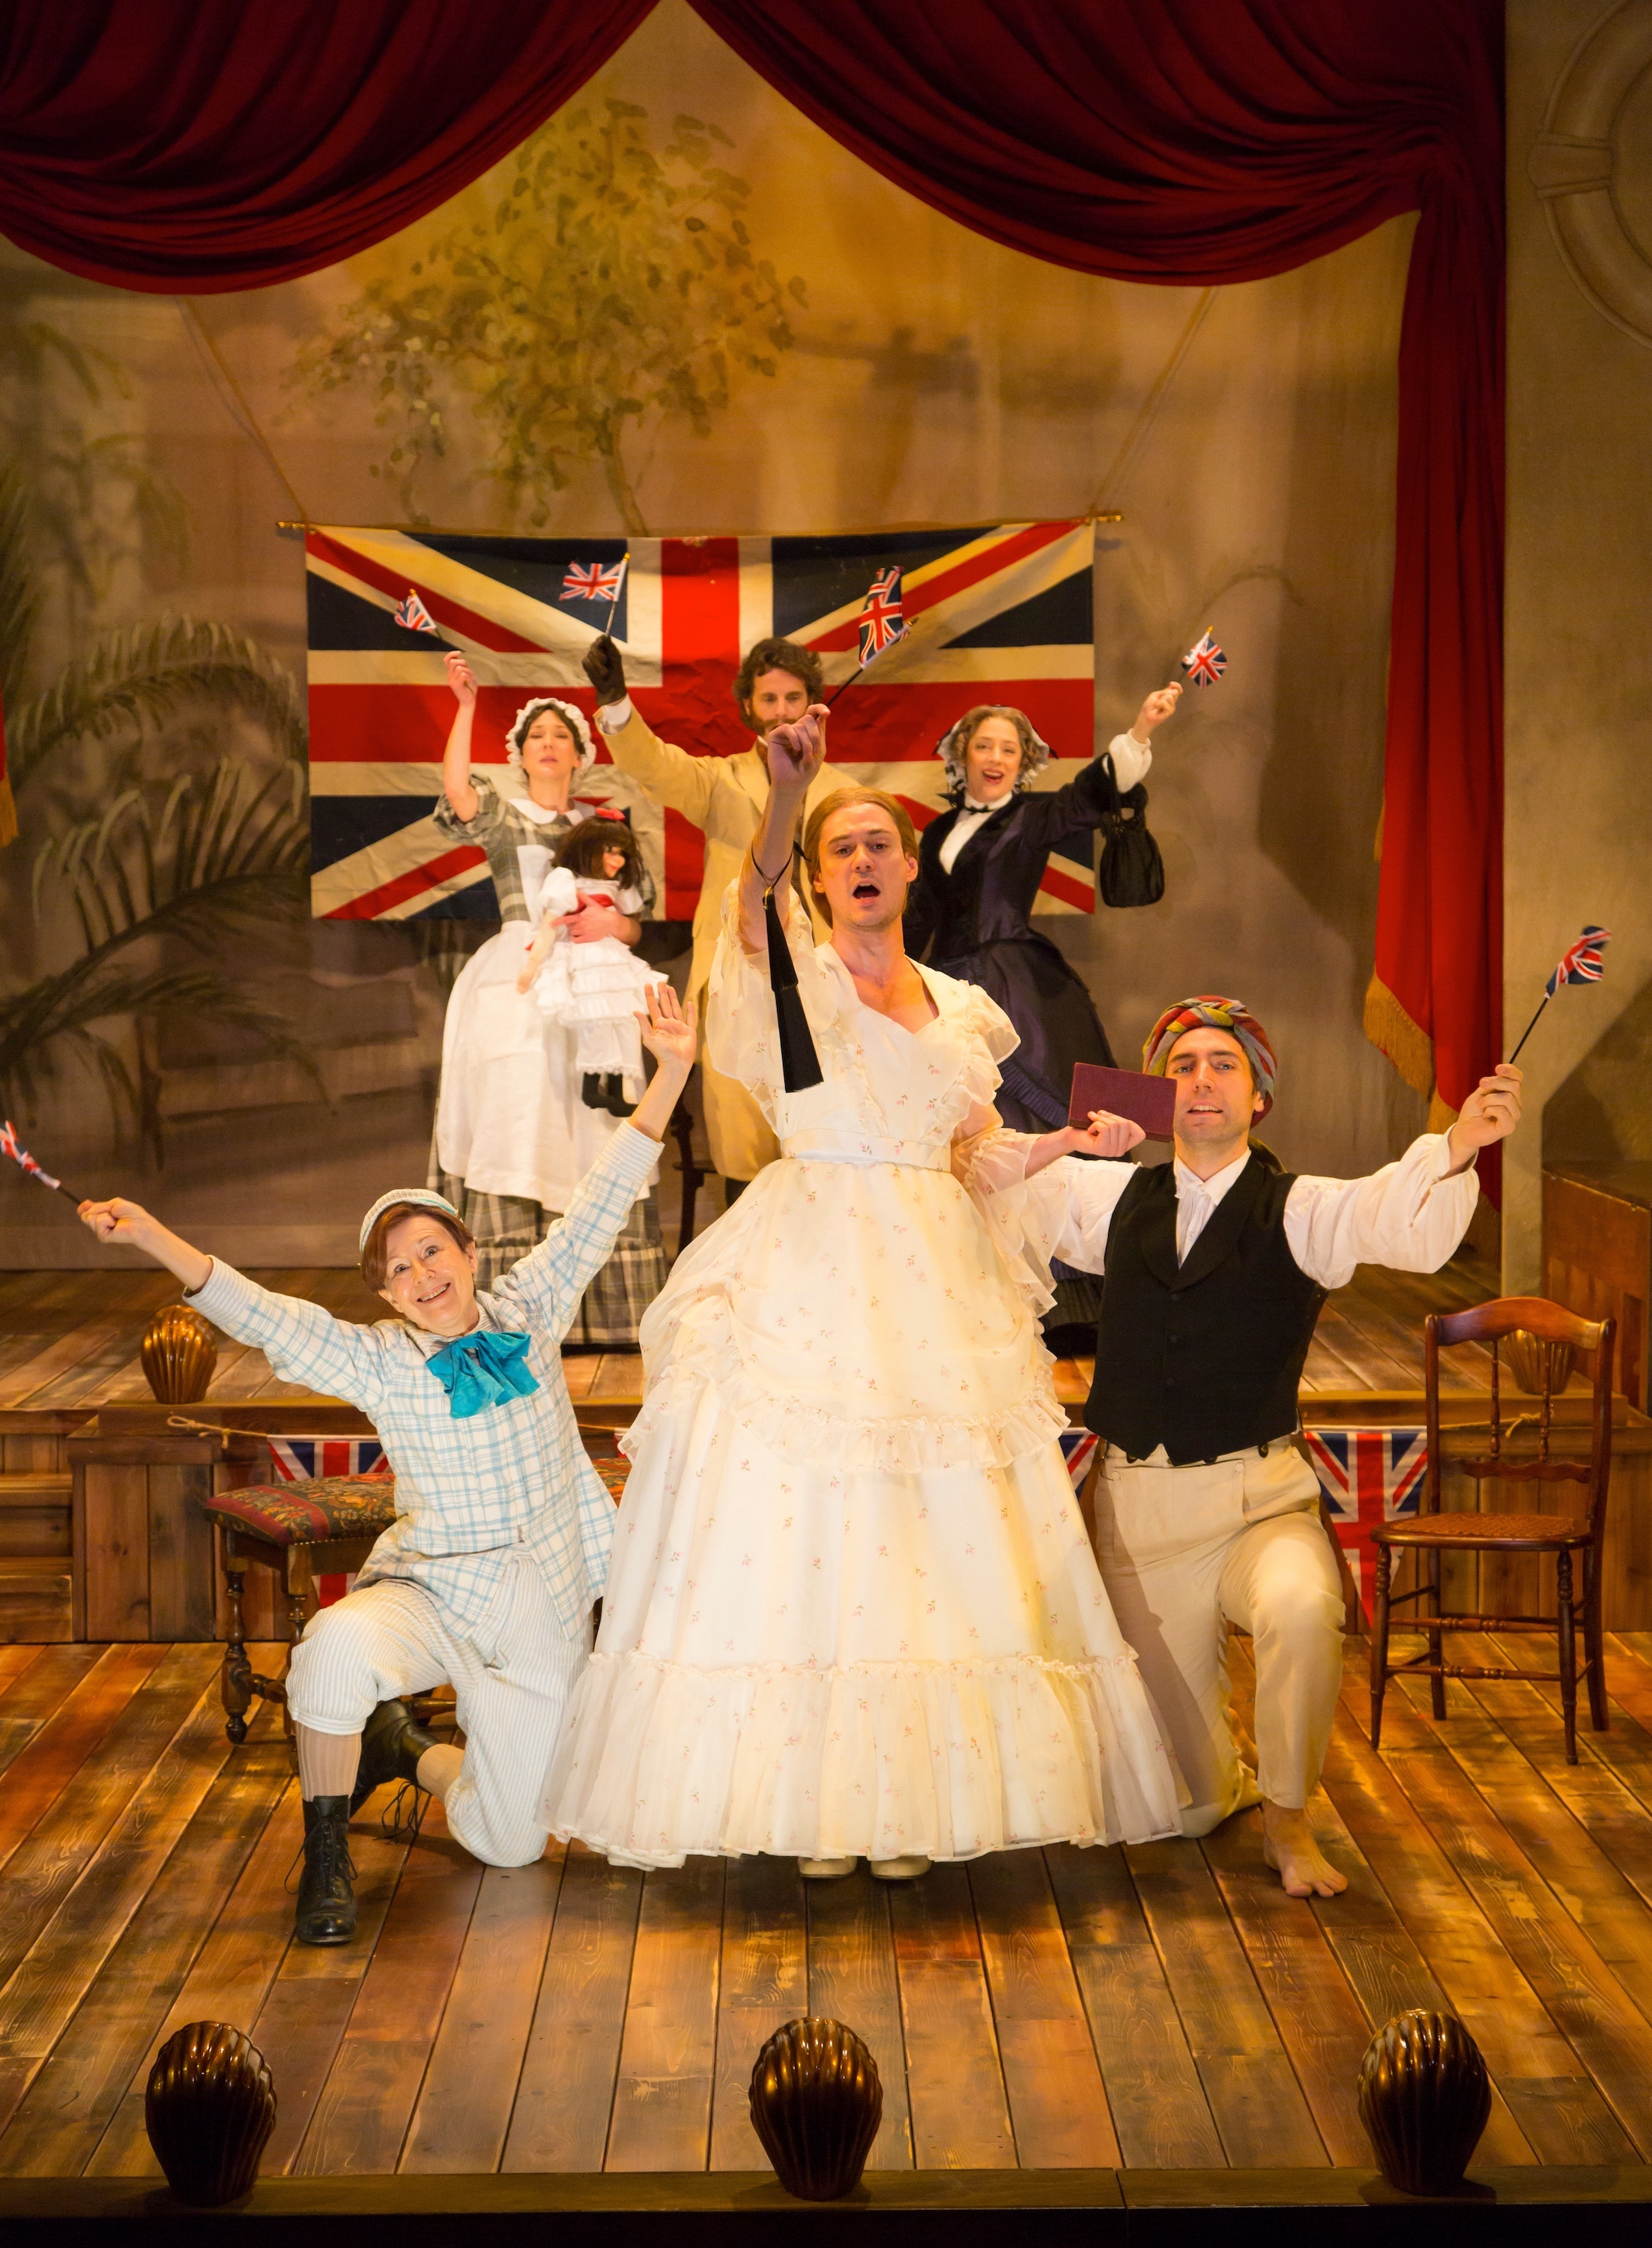 Front: Edward (Mia Dillon), Betty (Tom Pecinka), Joshua (William John Austin); Rear: Ellen (Sarah Lemp), Clive (Mark H. Dold), Maud (Emily Gunyou Halaas) (photo: T. Charles Erickson)